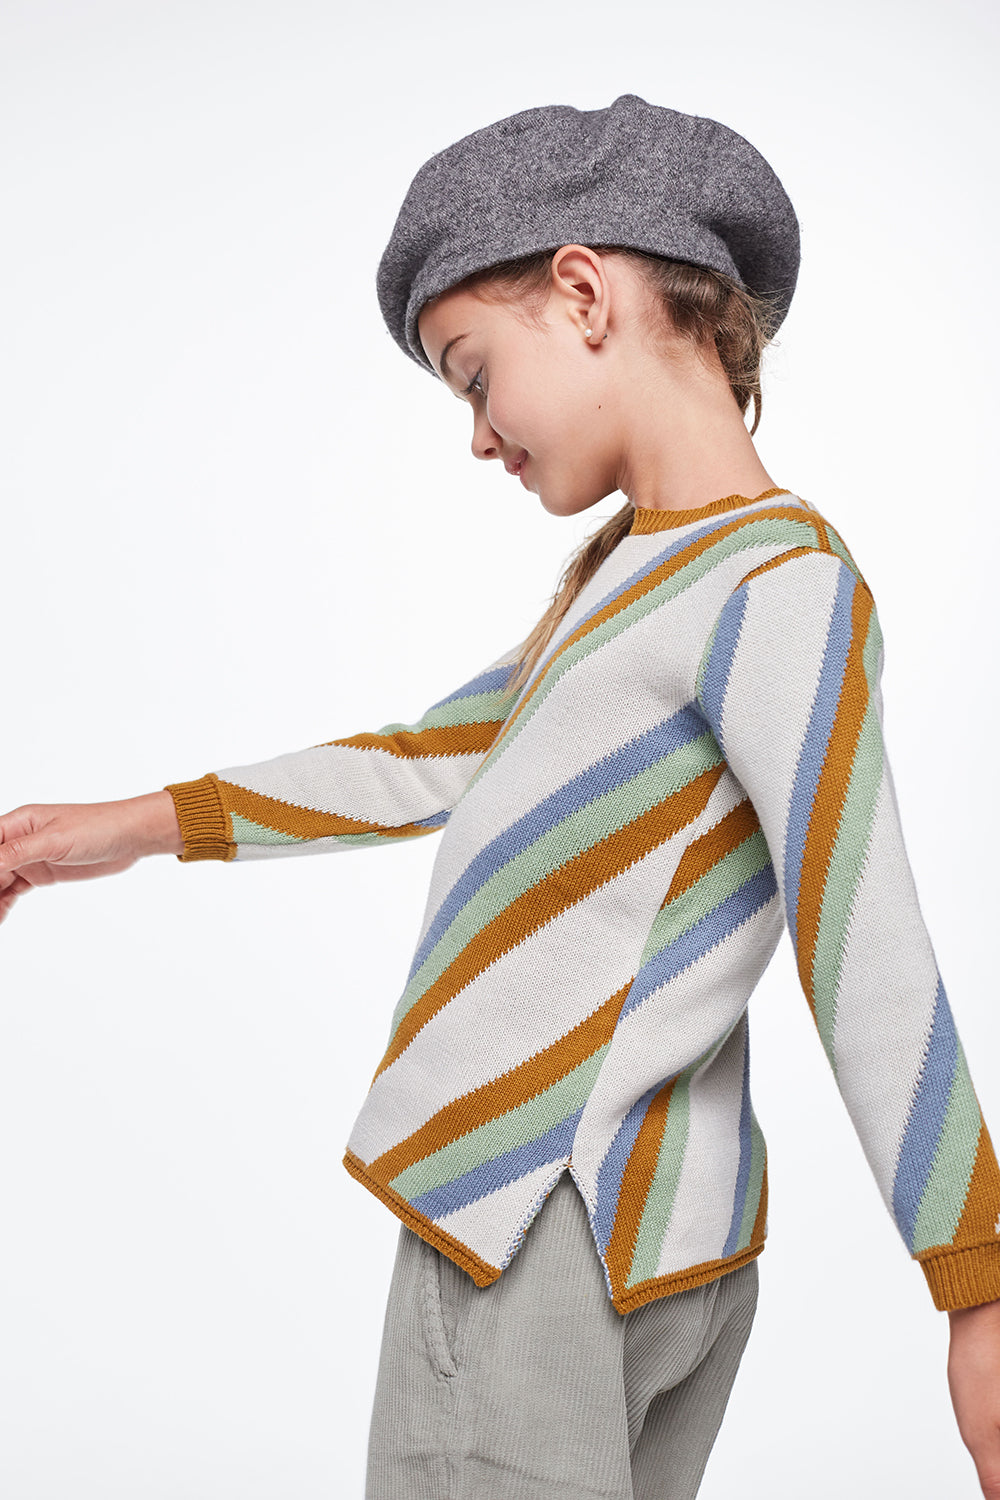 Load image into Gallery viewer, Coco Au Lait KNITTED STRIPED SWEATER Sweater Multicolor Stripes